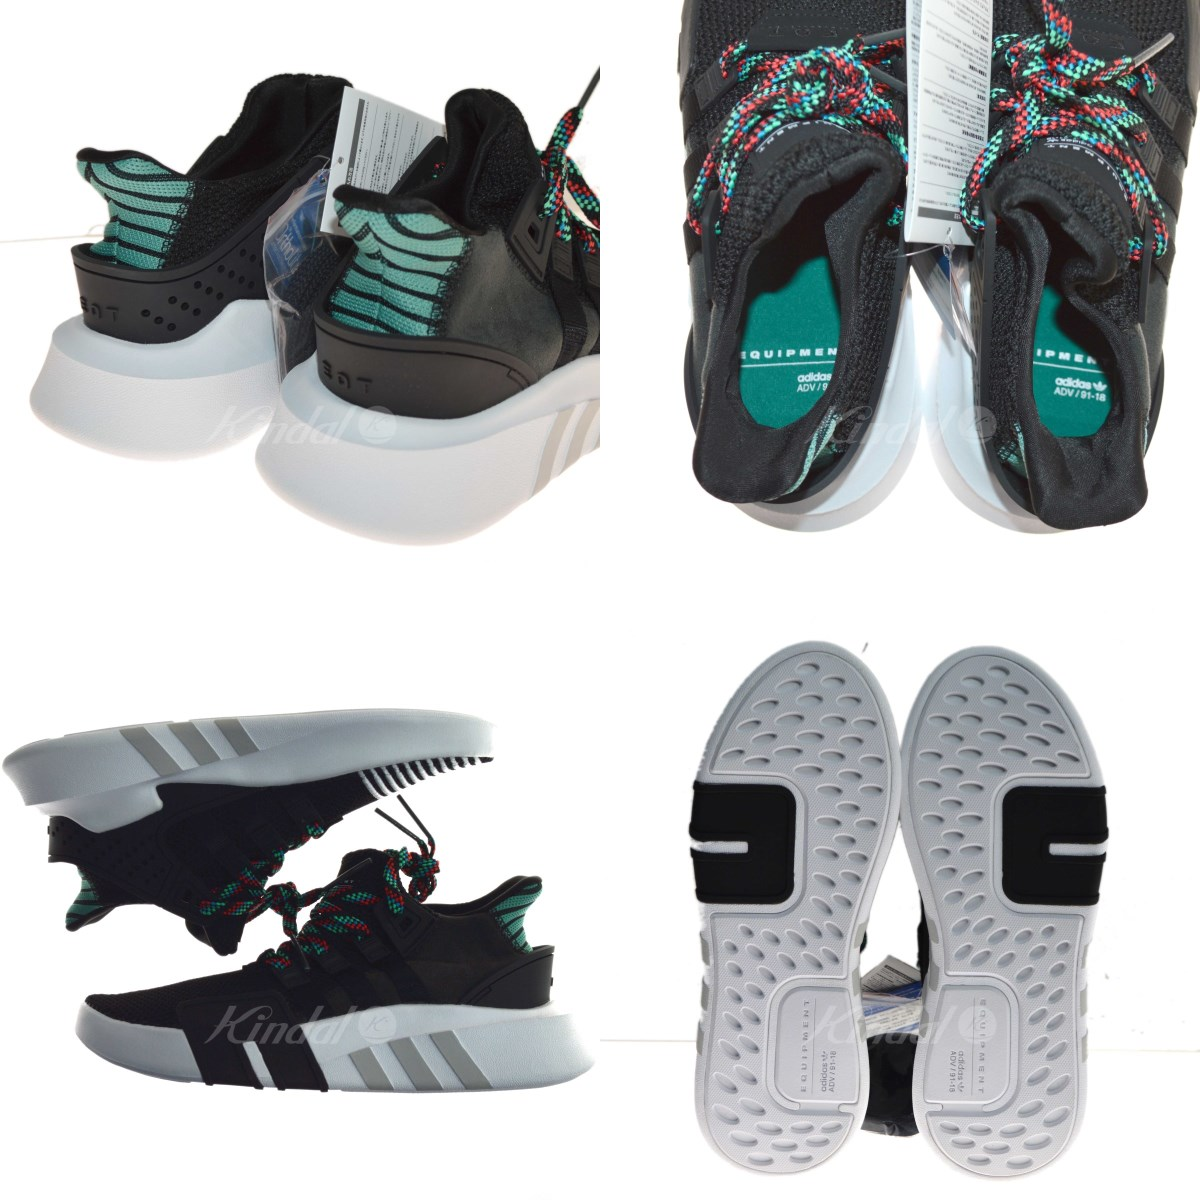 52e3010a963 adidas EQT BASK ADV higher frequency elimination sneakers black size  26. 5  (Adidas)